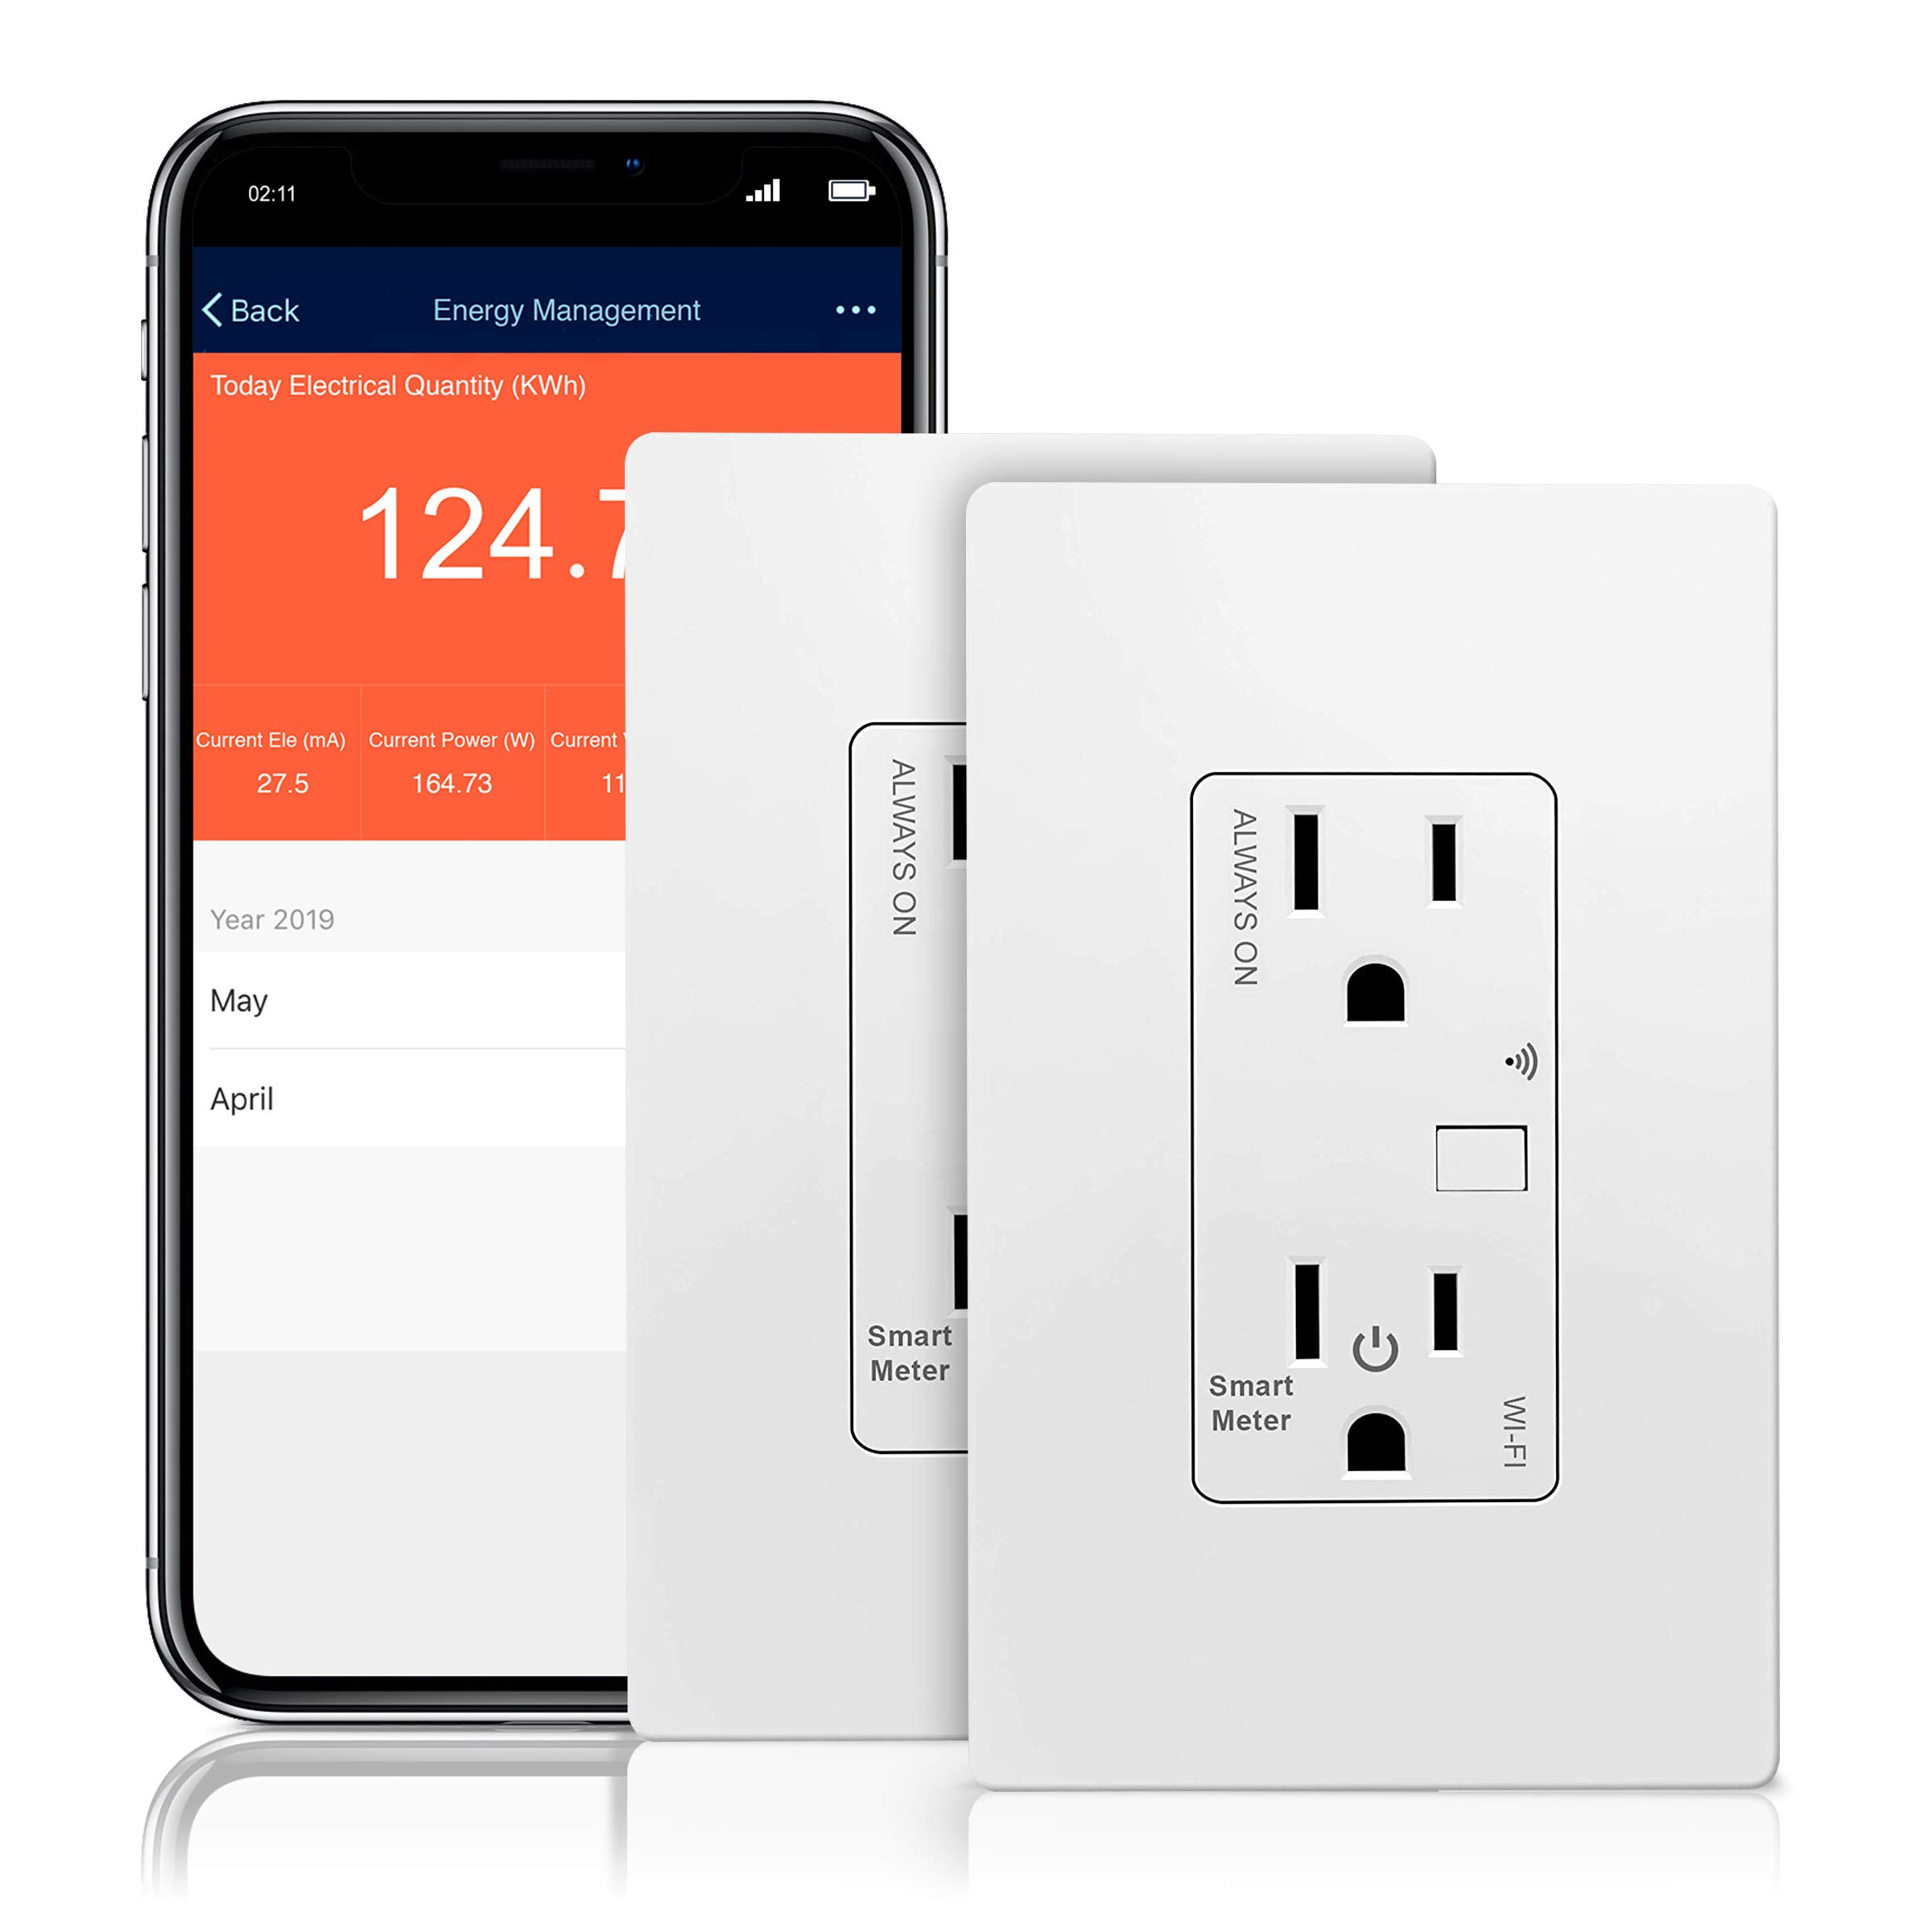 TOPGREENER Smart Wi-Fi Outlet with Energy Monitoring, Tamper-Resistant, Control Lighting and Appliances from Anywhere, in-Wall, No Hub Required, Works w/Amazon Alexa and Google Assistant, 2 Pack